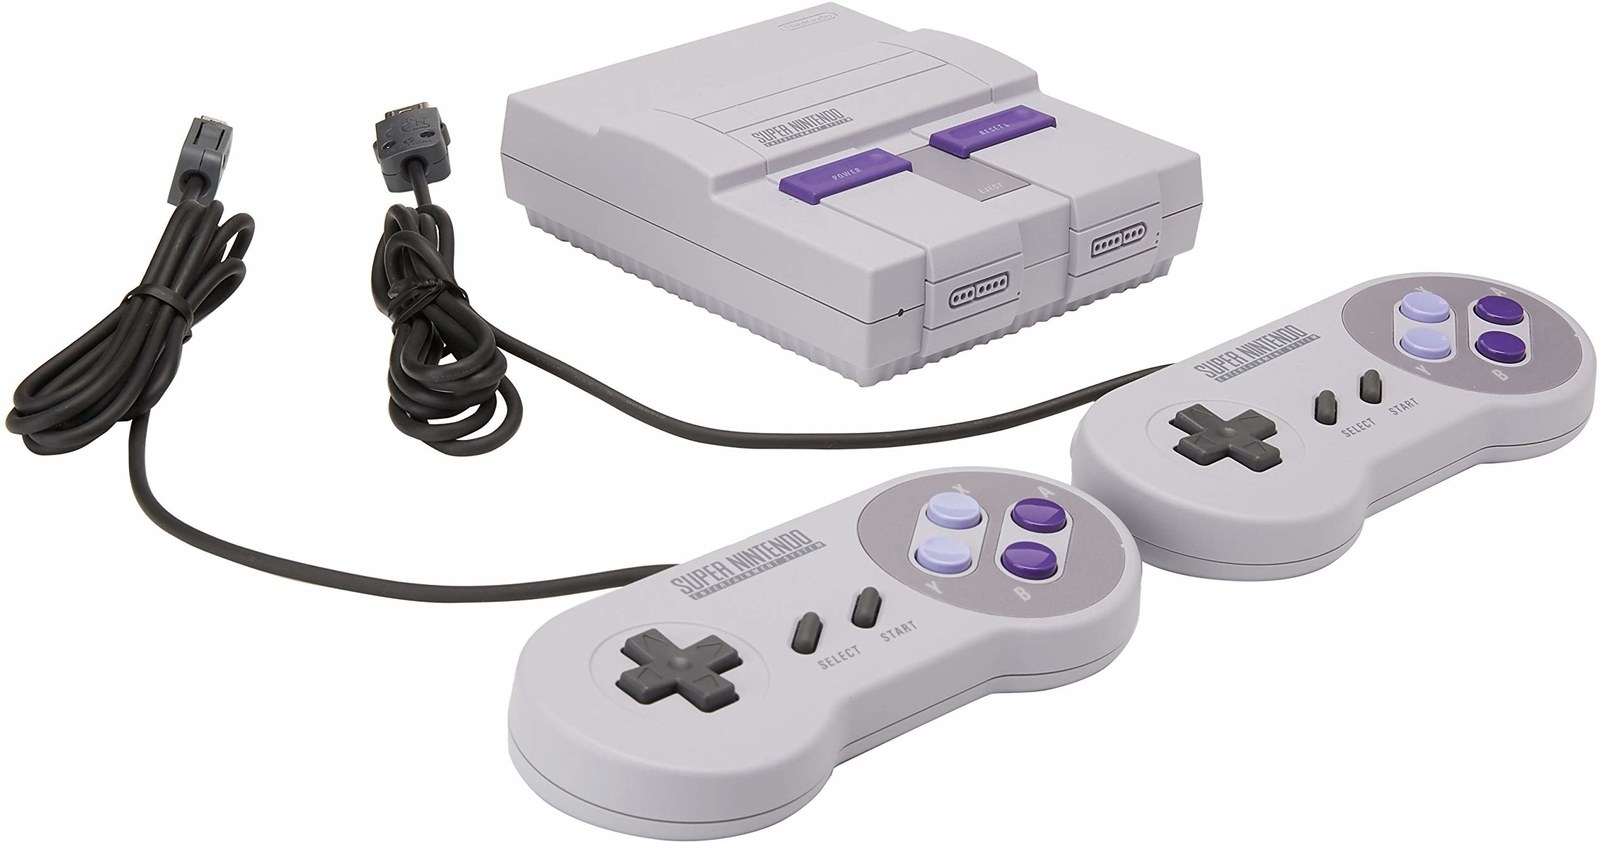 The Super NES Classic